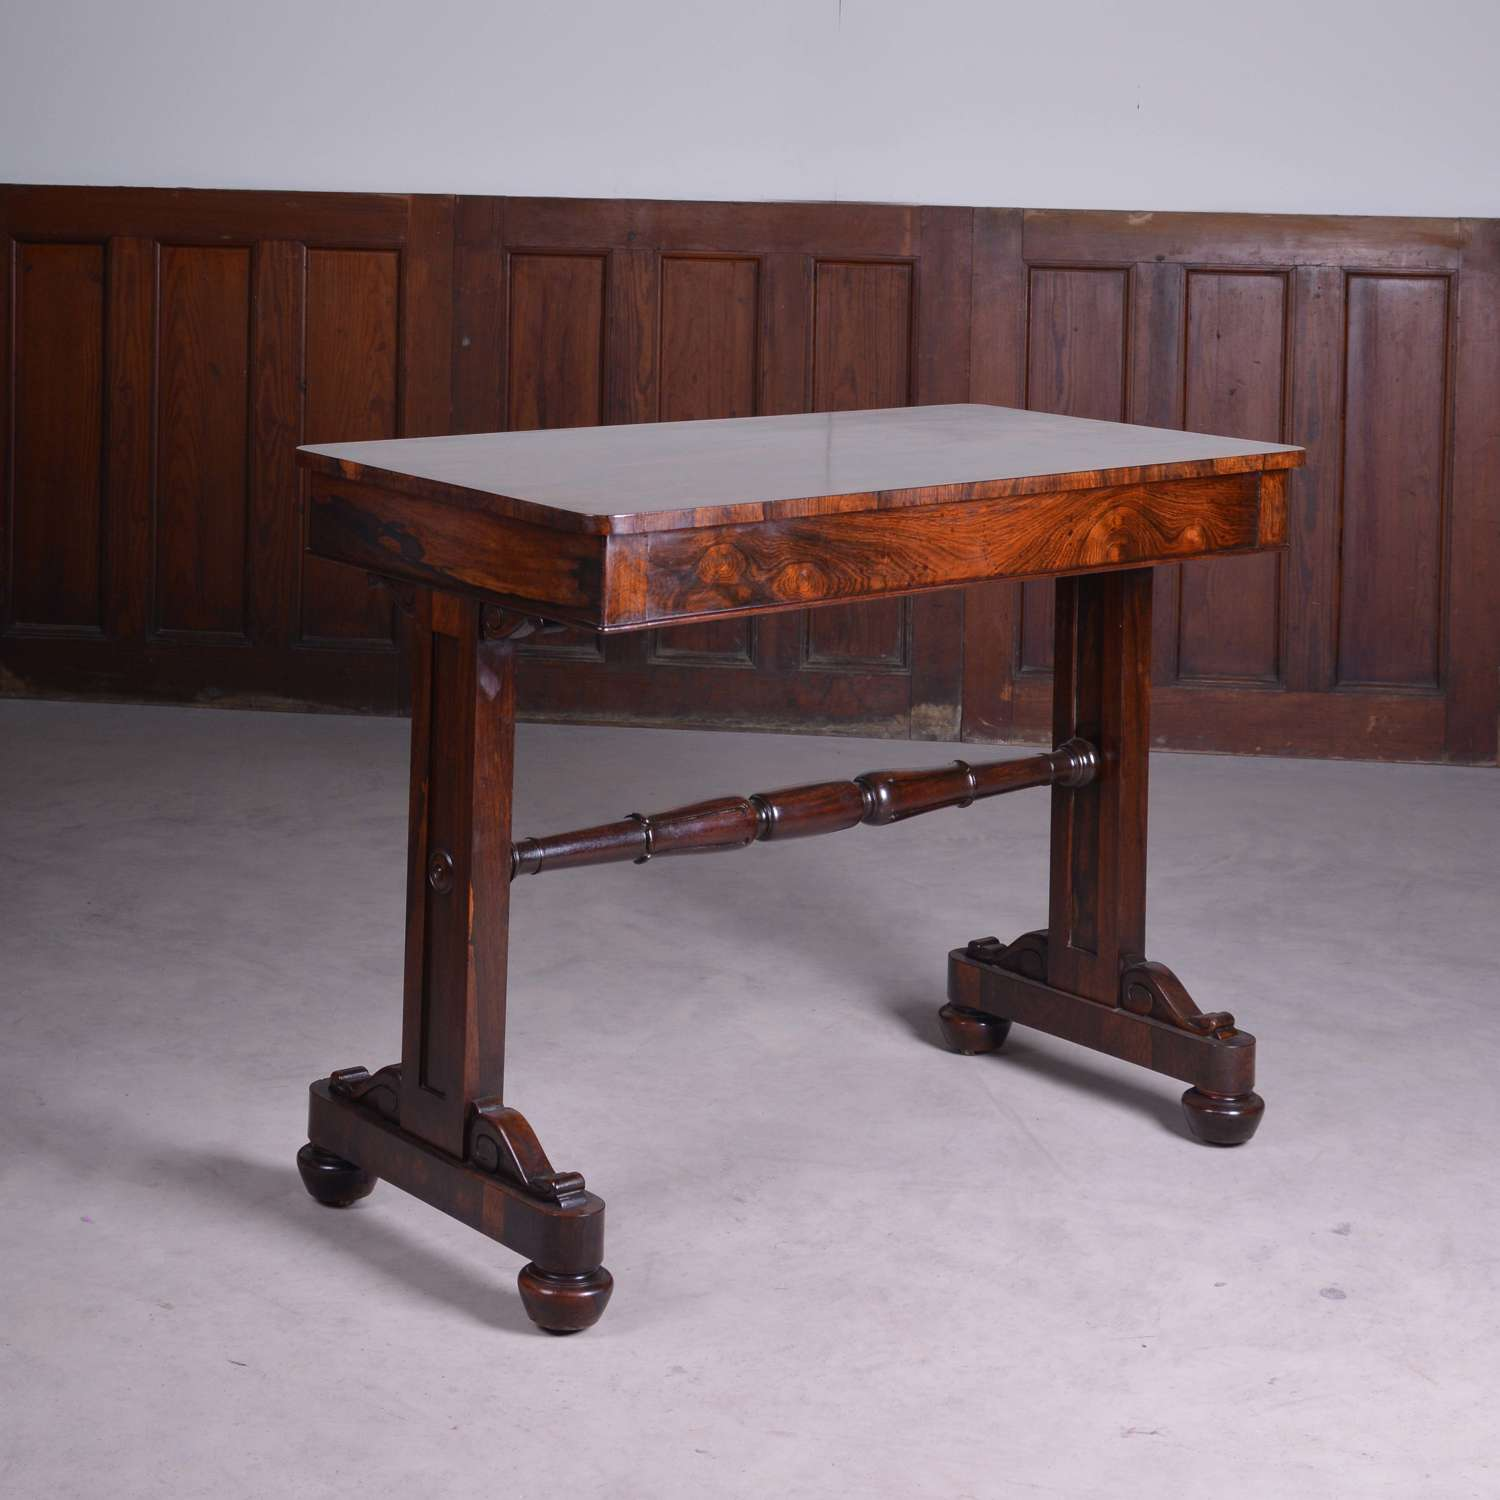 Regency rosewood centre table, or side table